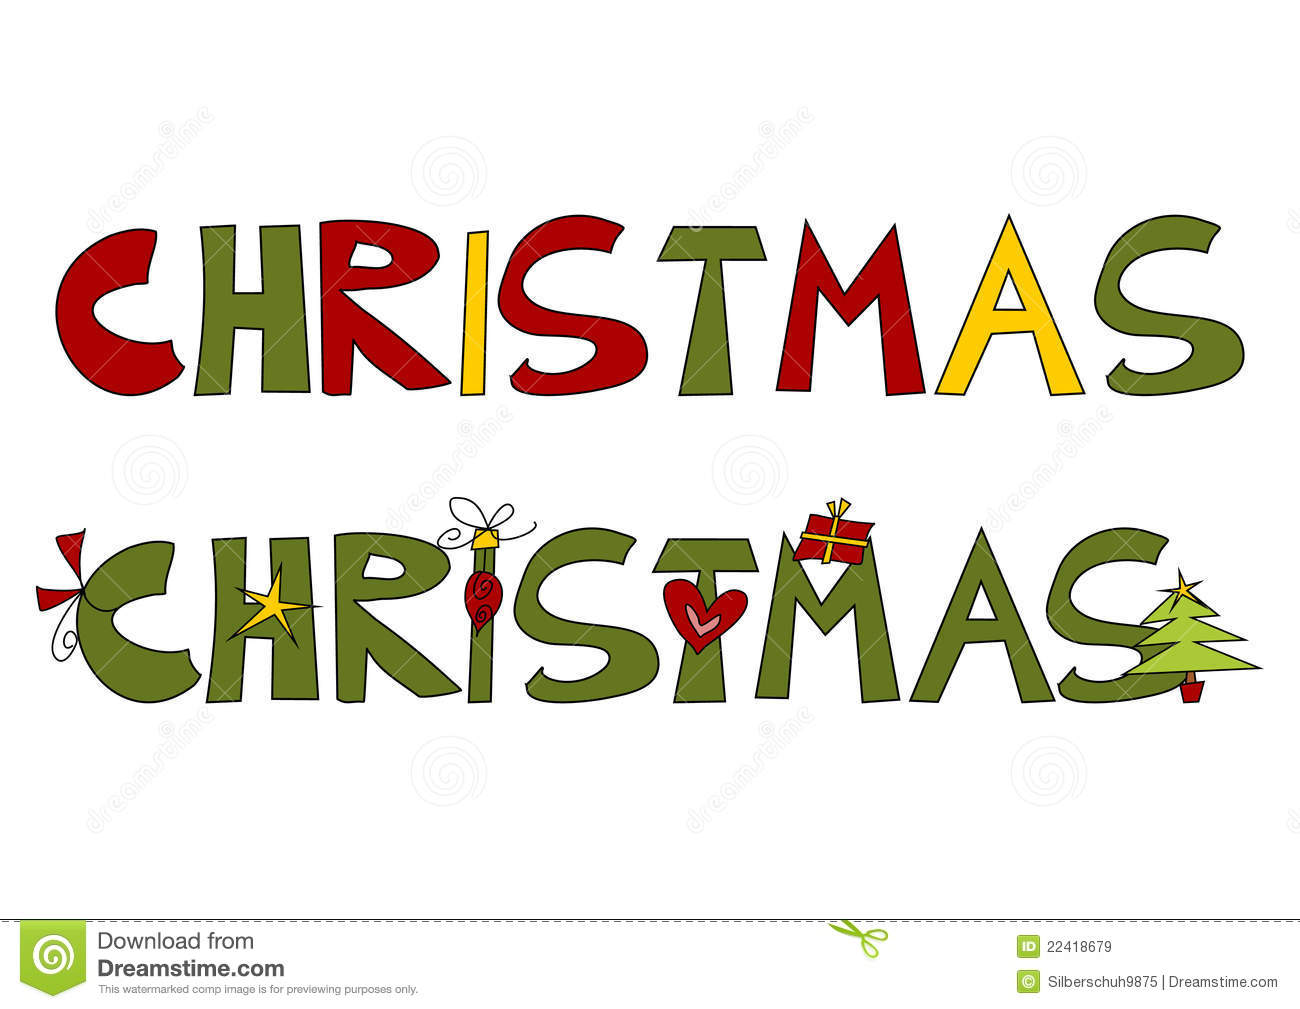 Christmas text stock vector. Illustration of cute, holiday - 22418679